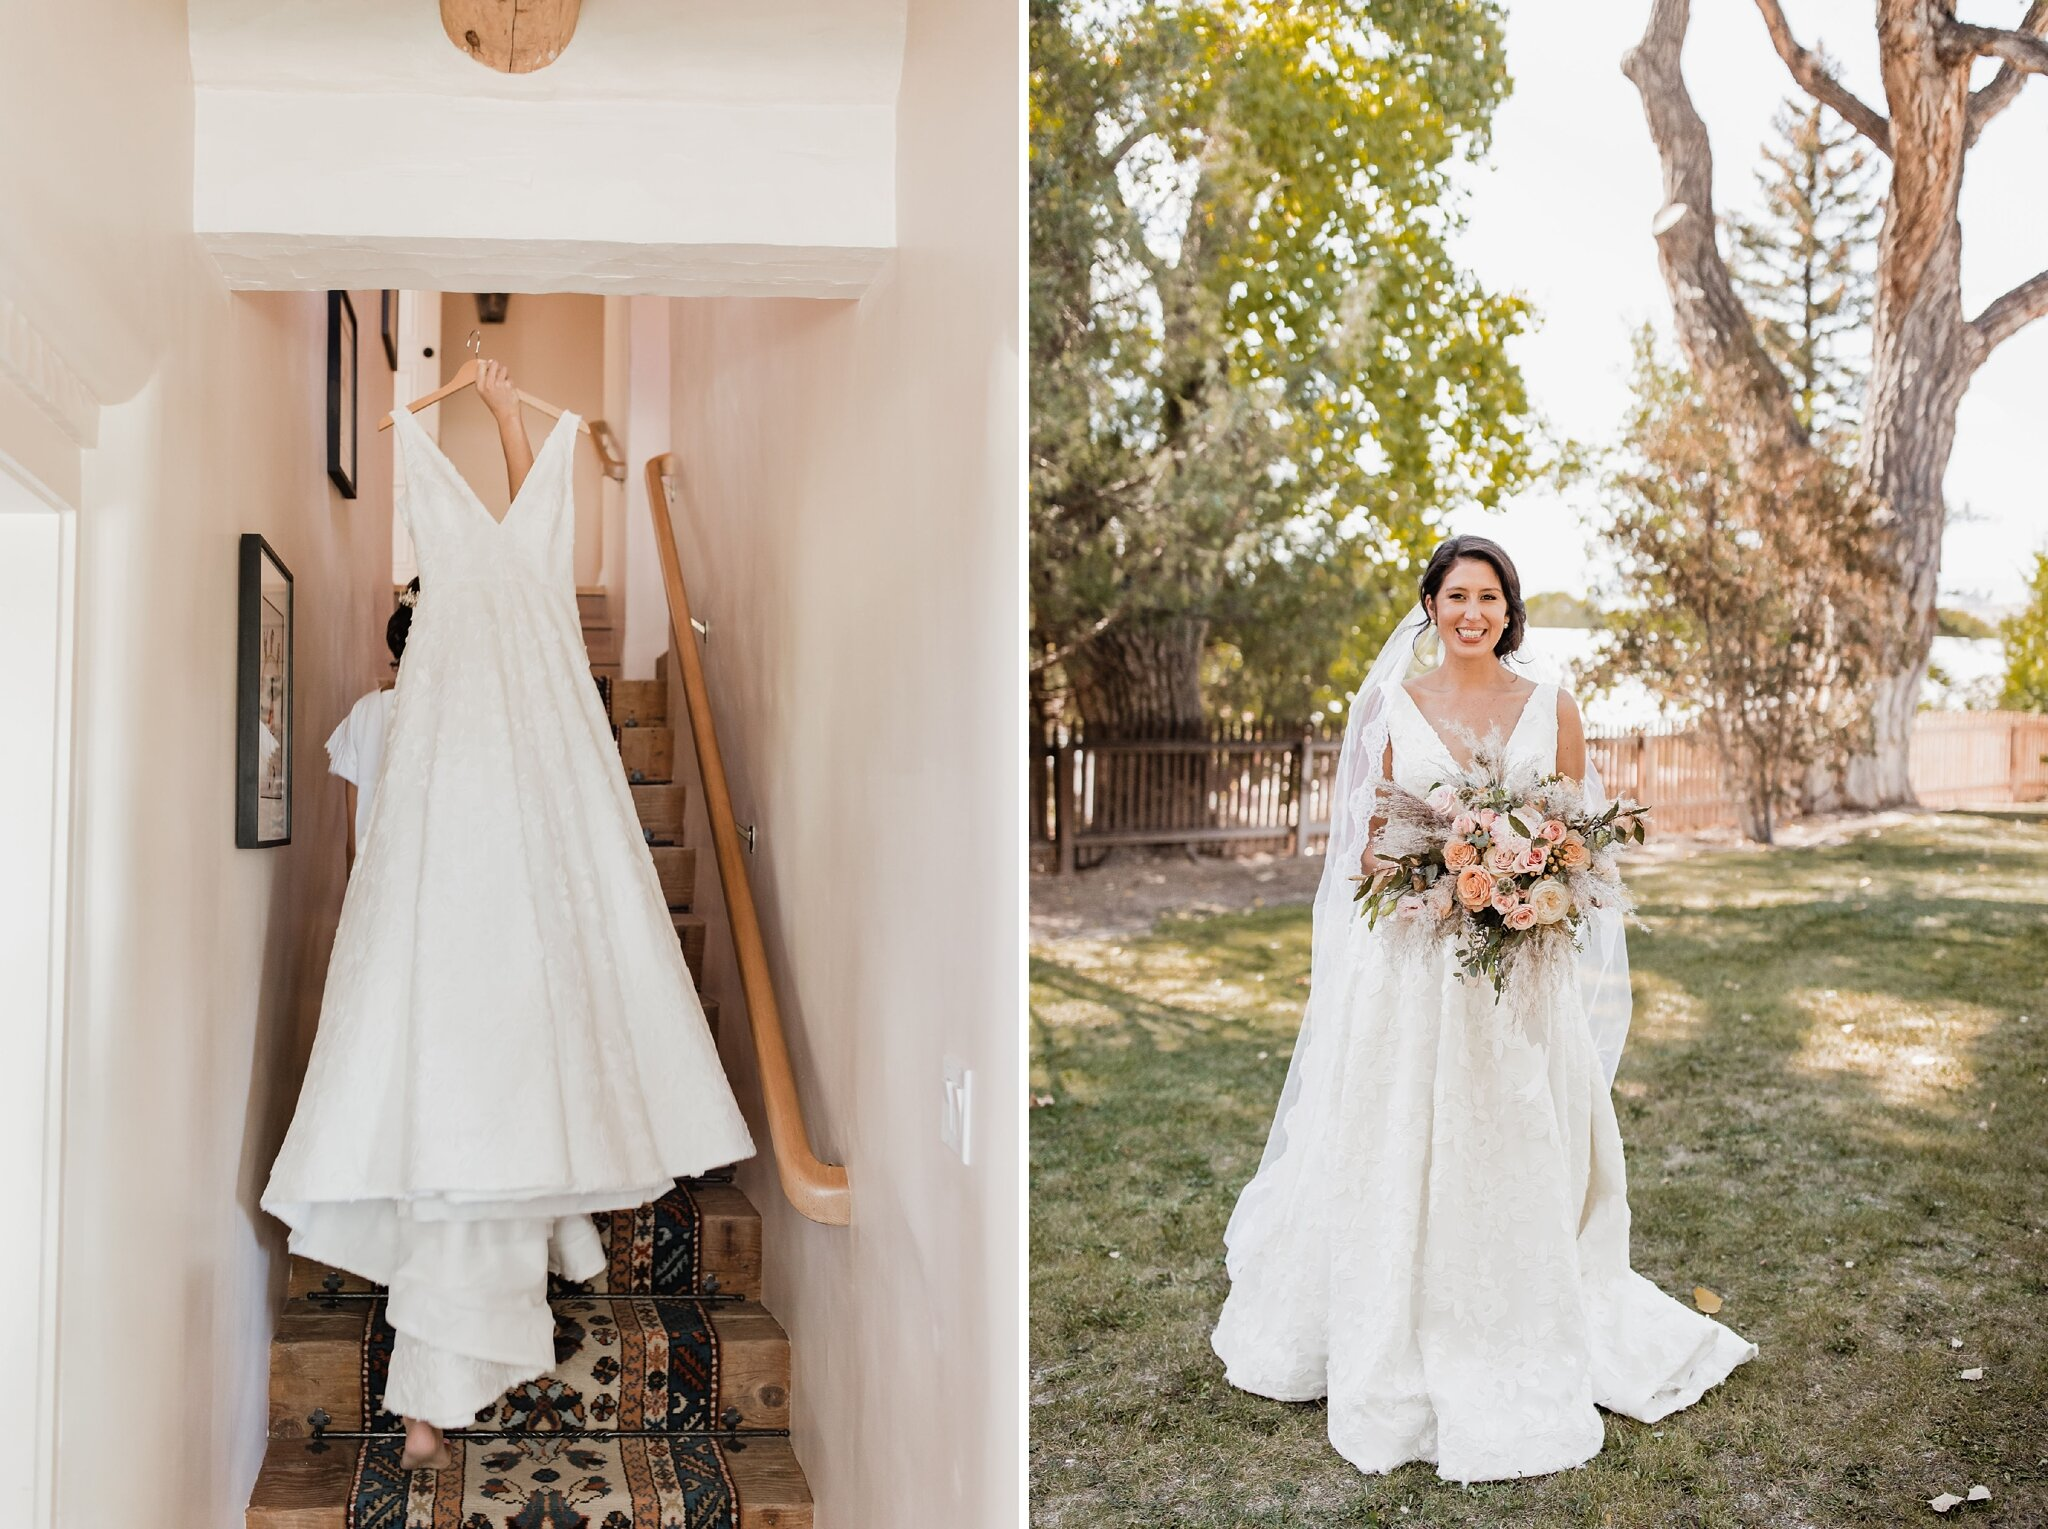 Alicia+lucia+photography+-+albuquerque+wedding+photographer+-+santa+fe+wedding+photography+-+new+mexico+wedding+photographer+-+new+mexico+wedding+-+wedding+-+bridal+gown+-+wedding+gown+-+ballgown+wedding+gown+-+ballgown+bridal+gown_0047.jpg